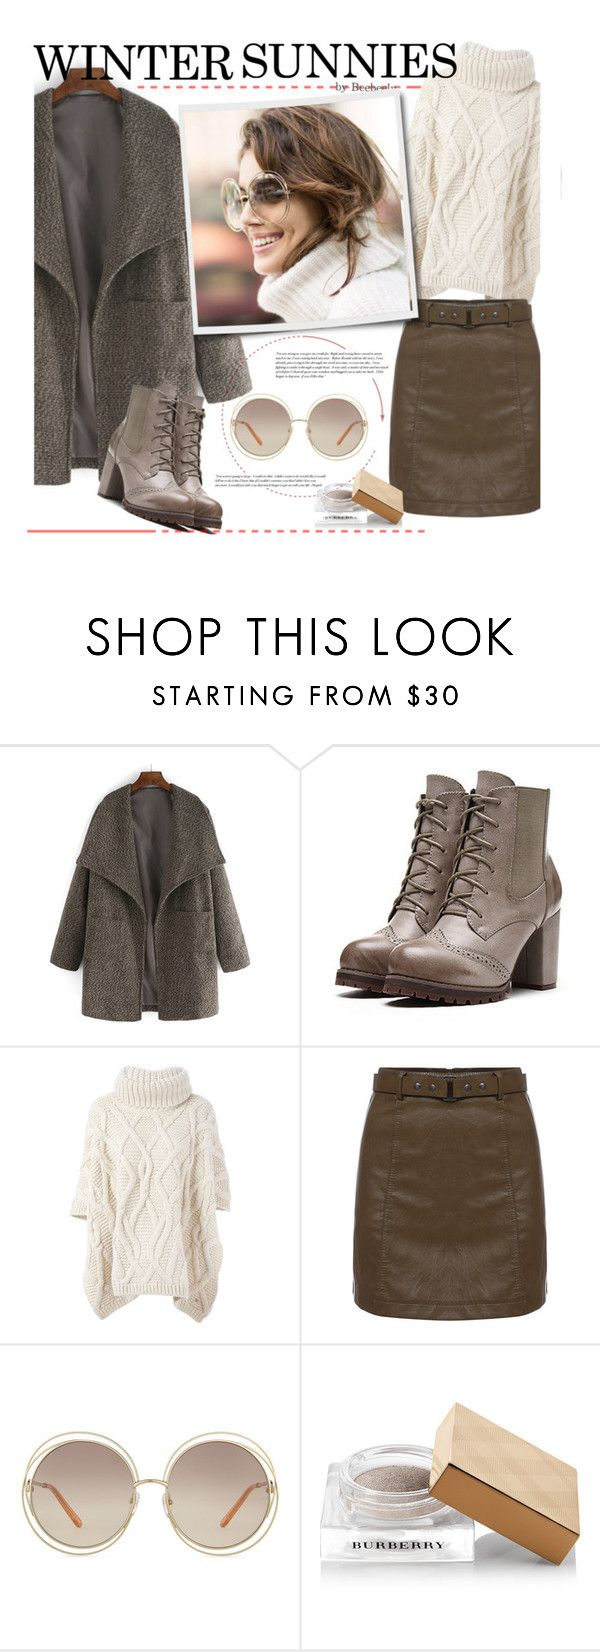 """""""Winter Sunnies"""" by beebeely-look ❤ liked on Polyvore featuring Woolrich, Chloé, Cullen, Burberry and wintersunnies"""